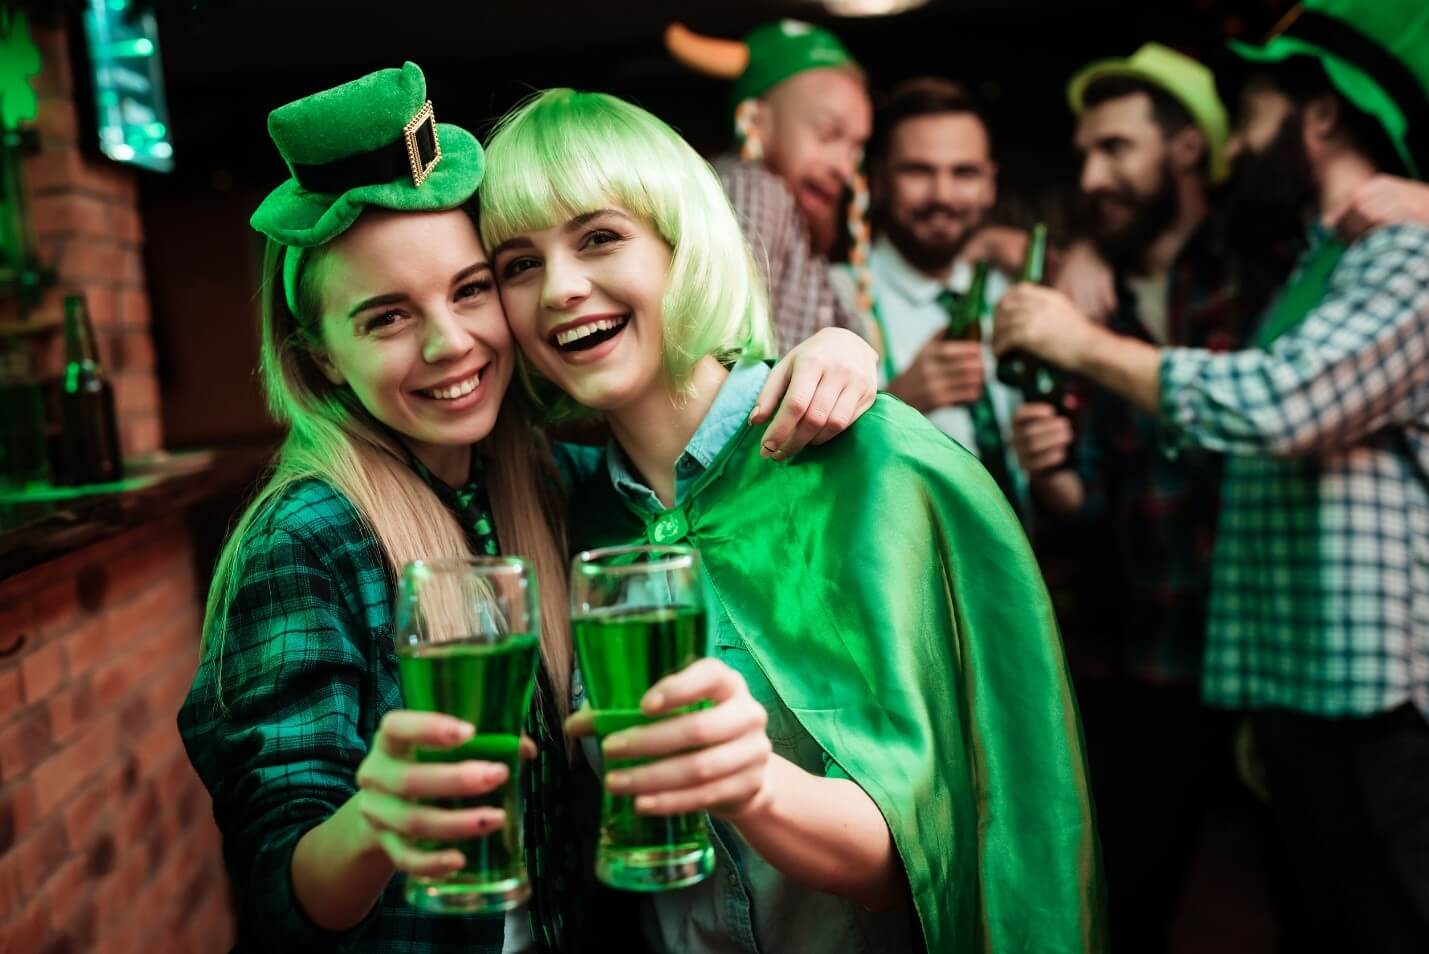 Don't Get a Texas Disorderly Conduct Charge This St. Paddy's Day